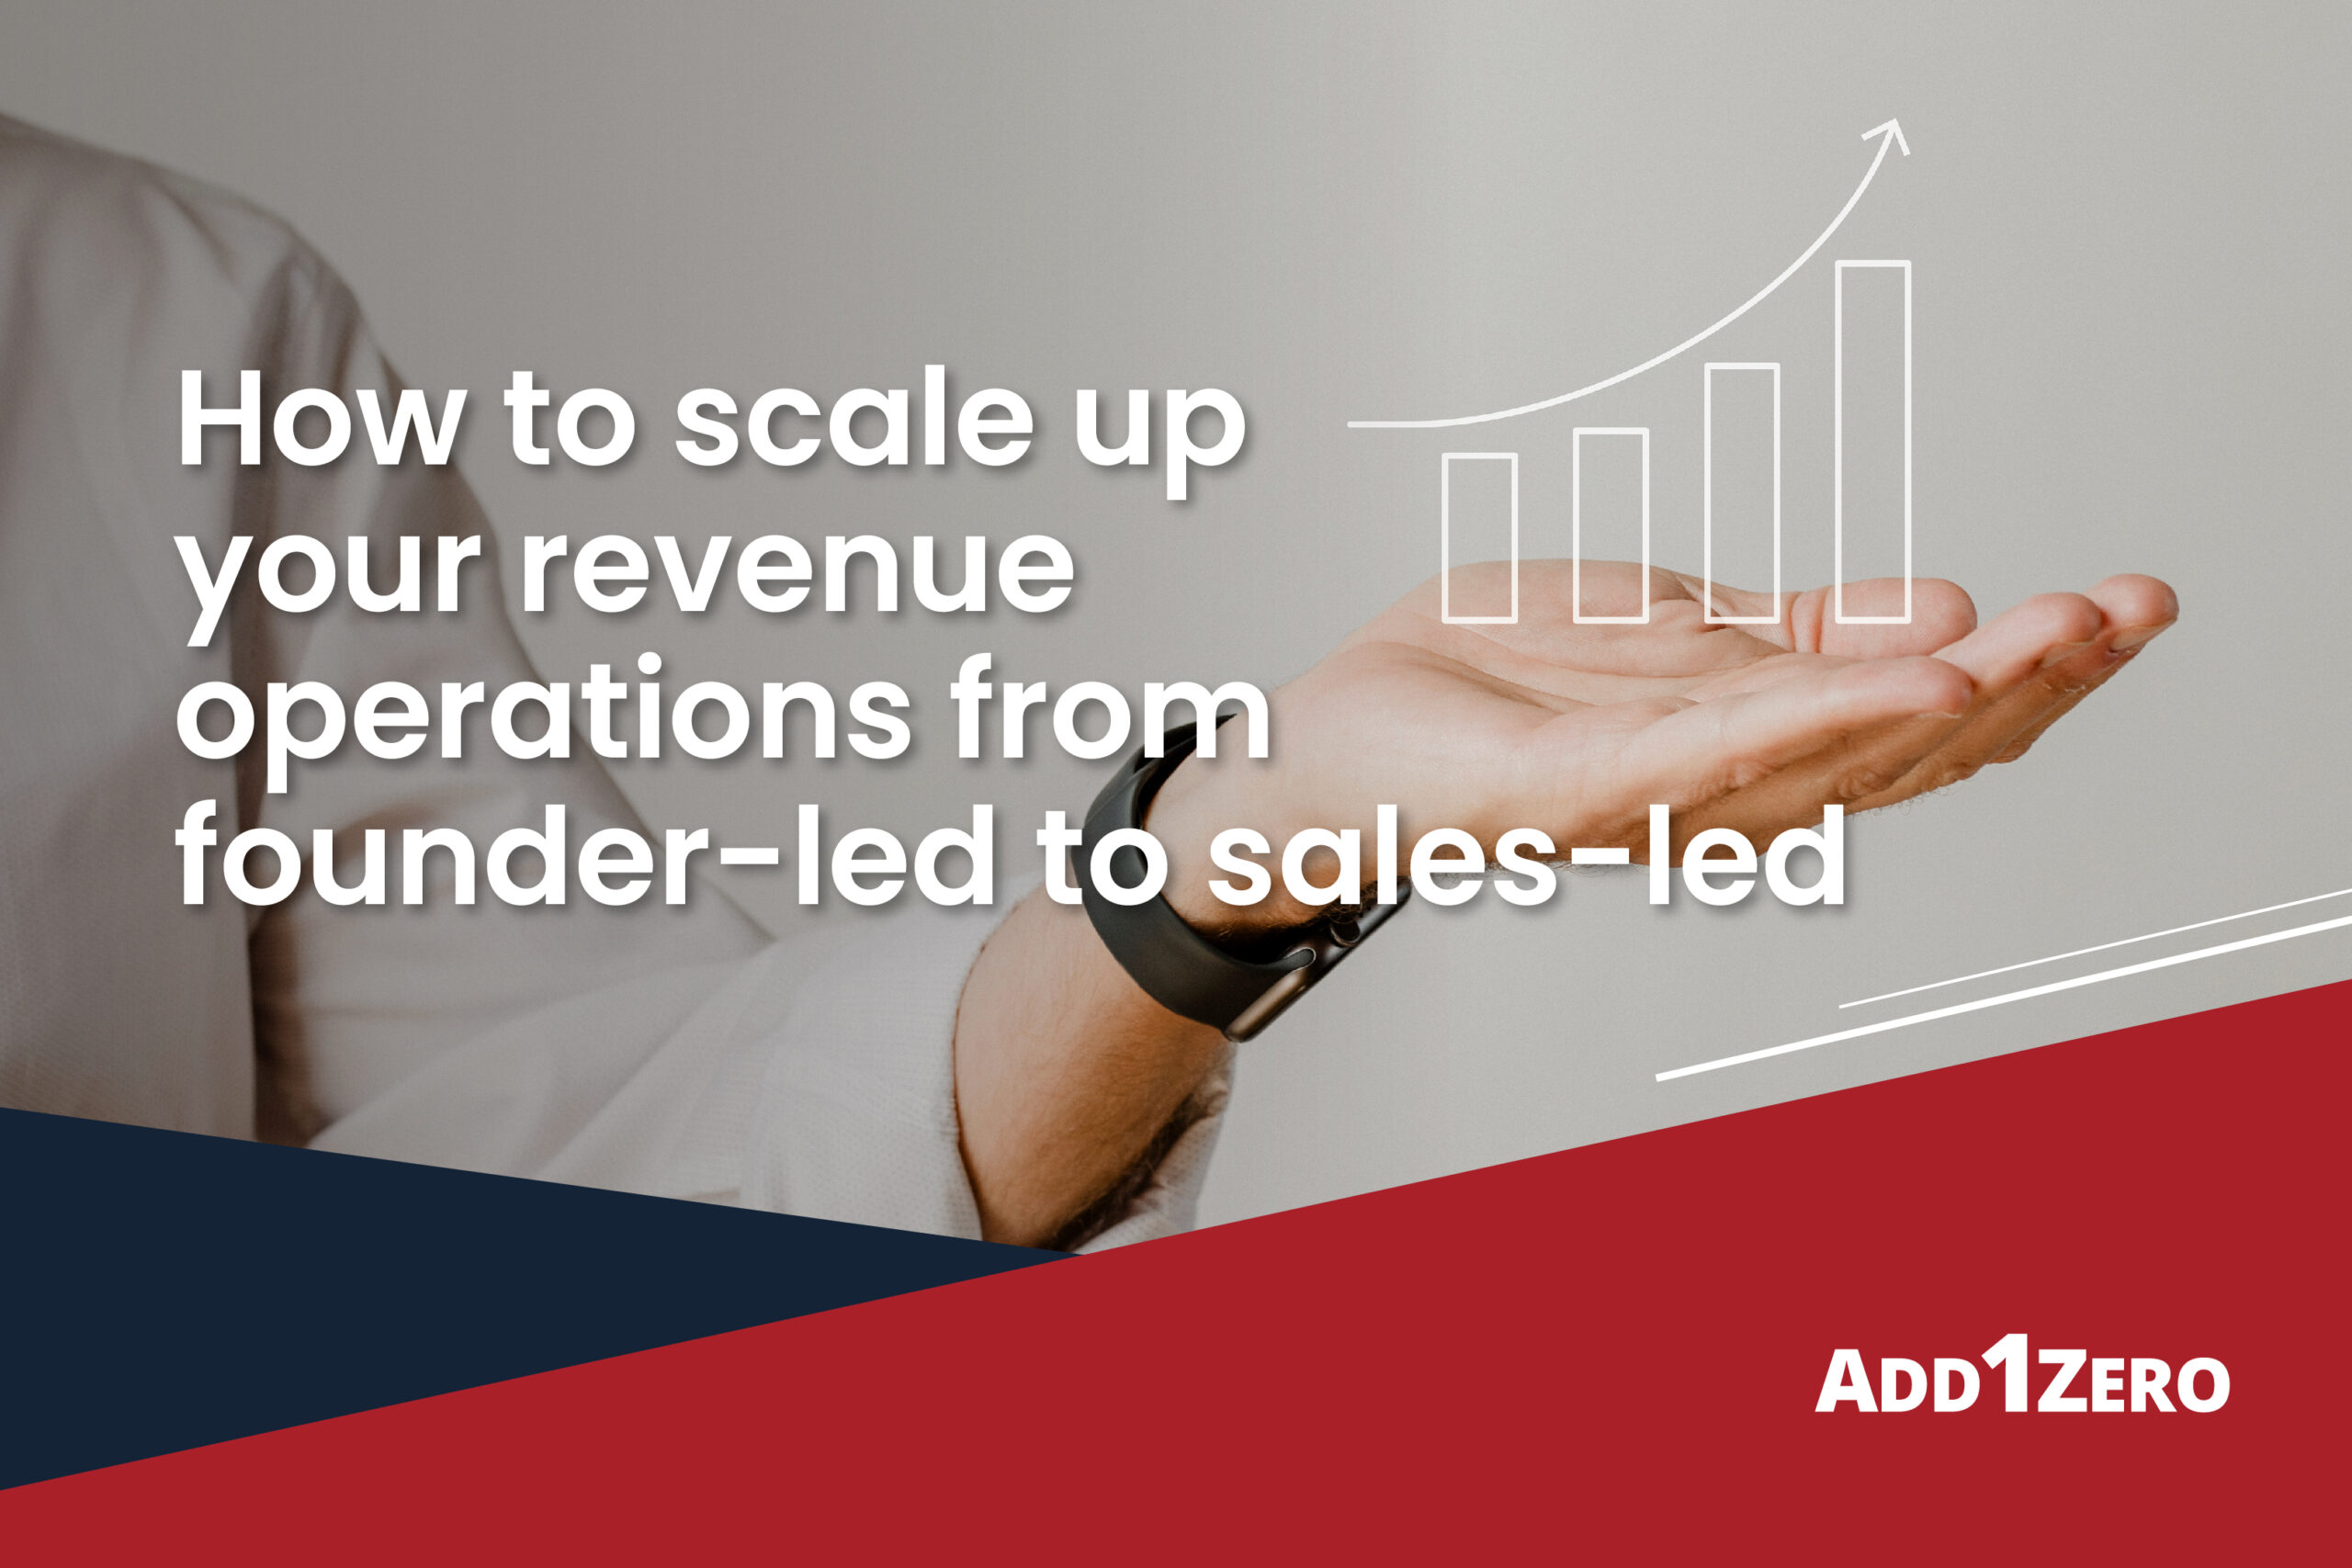 How to scale up your revenue operations from founder-led to sales-led